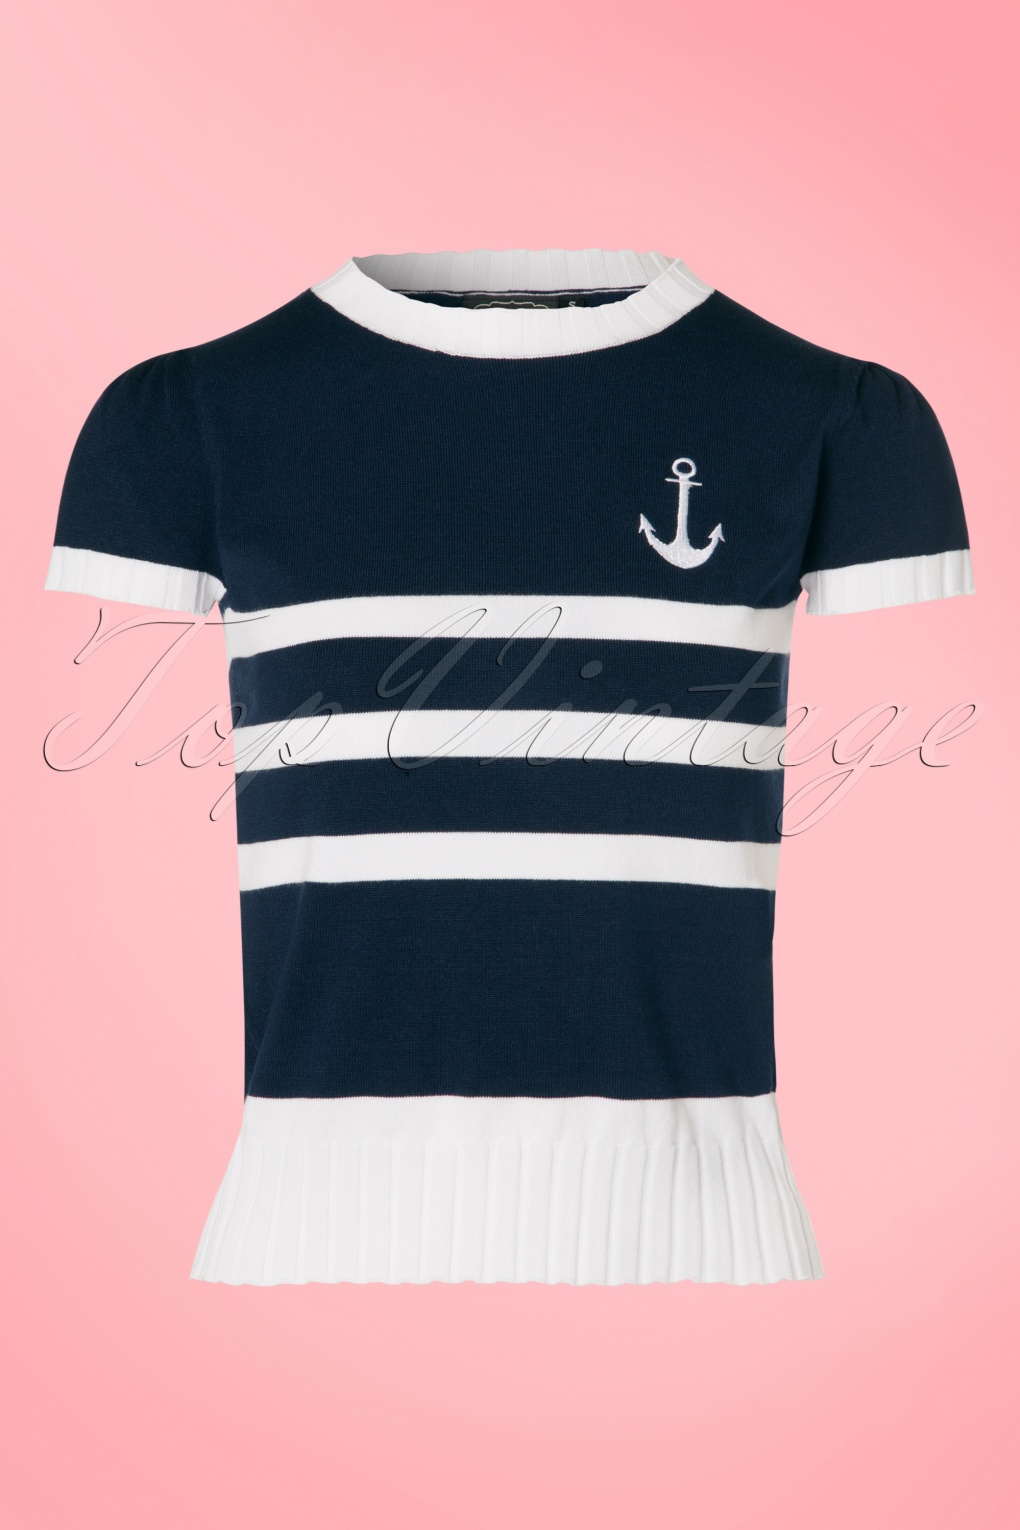 Vintage & Retro Shirts, Halter Tops, Blouses 50s Parker Sailor Sweater in Navy and White £28.57 AT vintagedancer.com